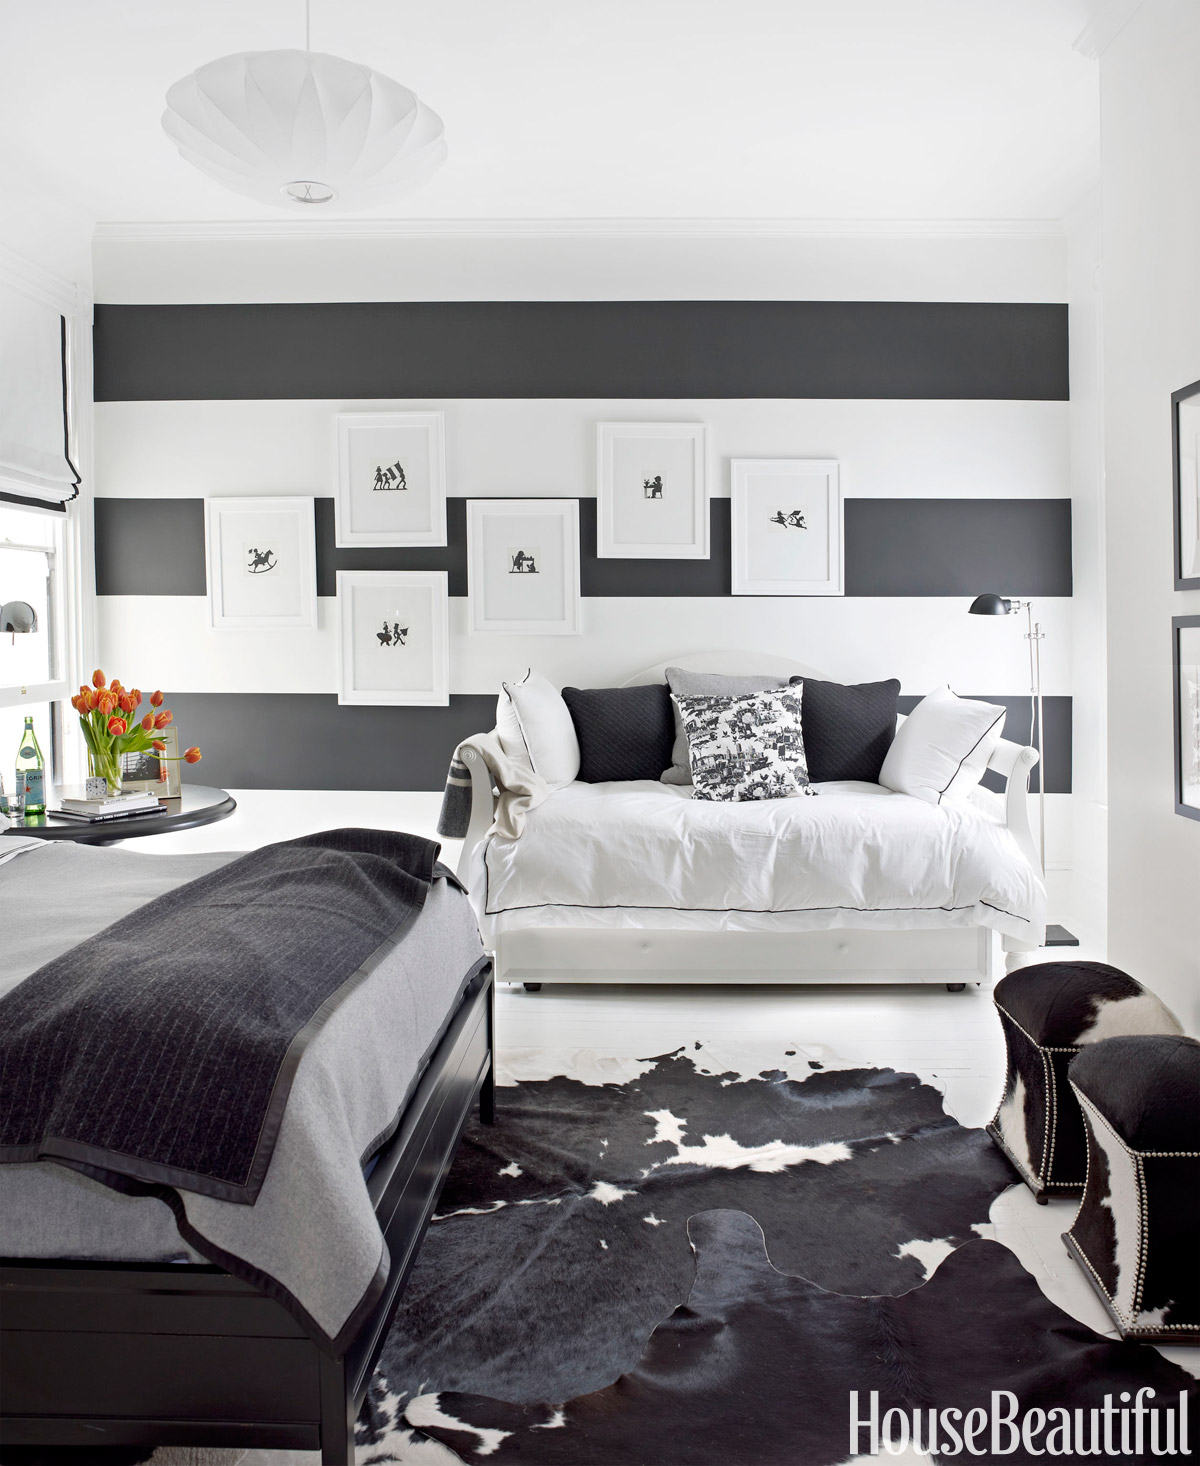 Black And White Bedroom Wall Decor Black And White Designer Rooms Black And White